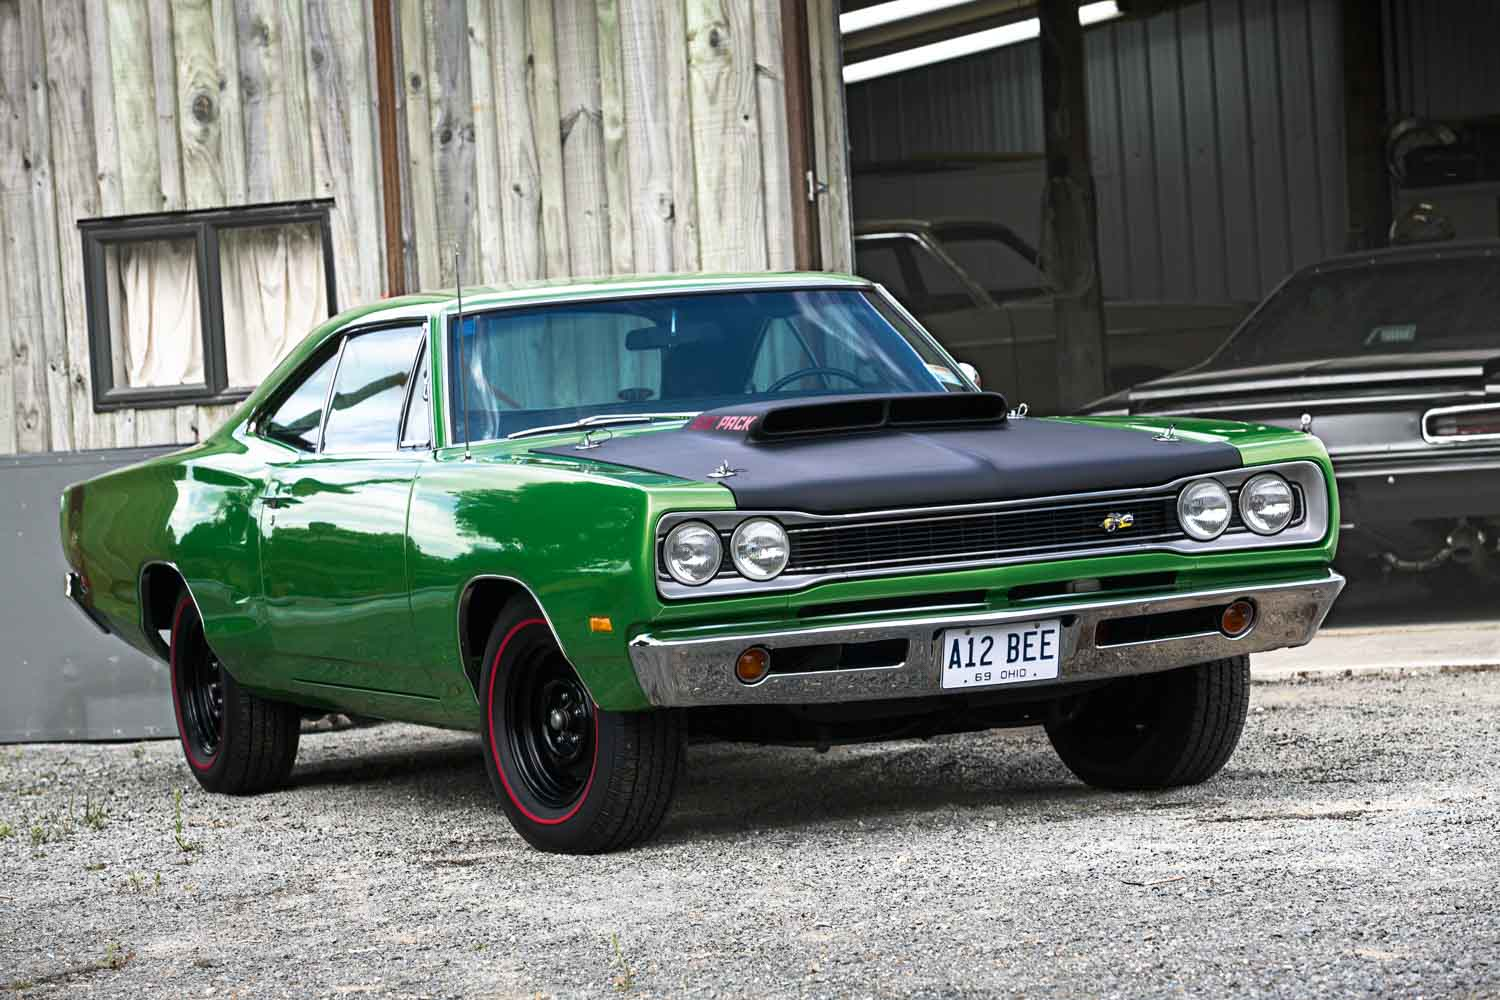 It stings like a bee: take a look at this 1969 Dodge Super Bee